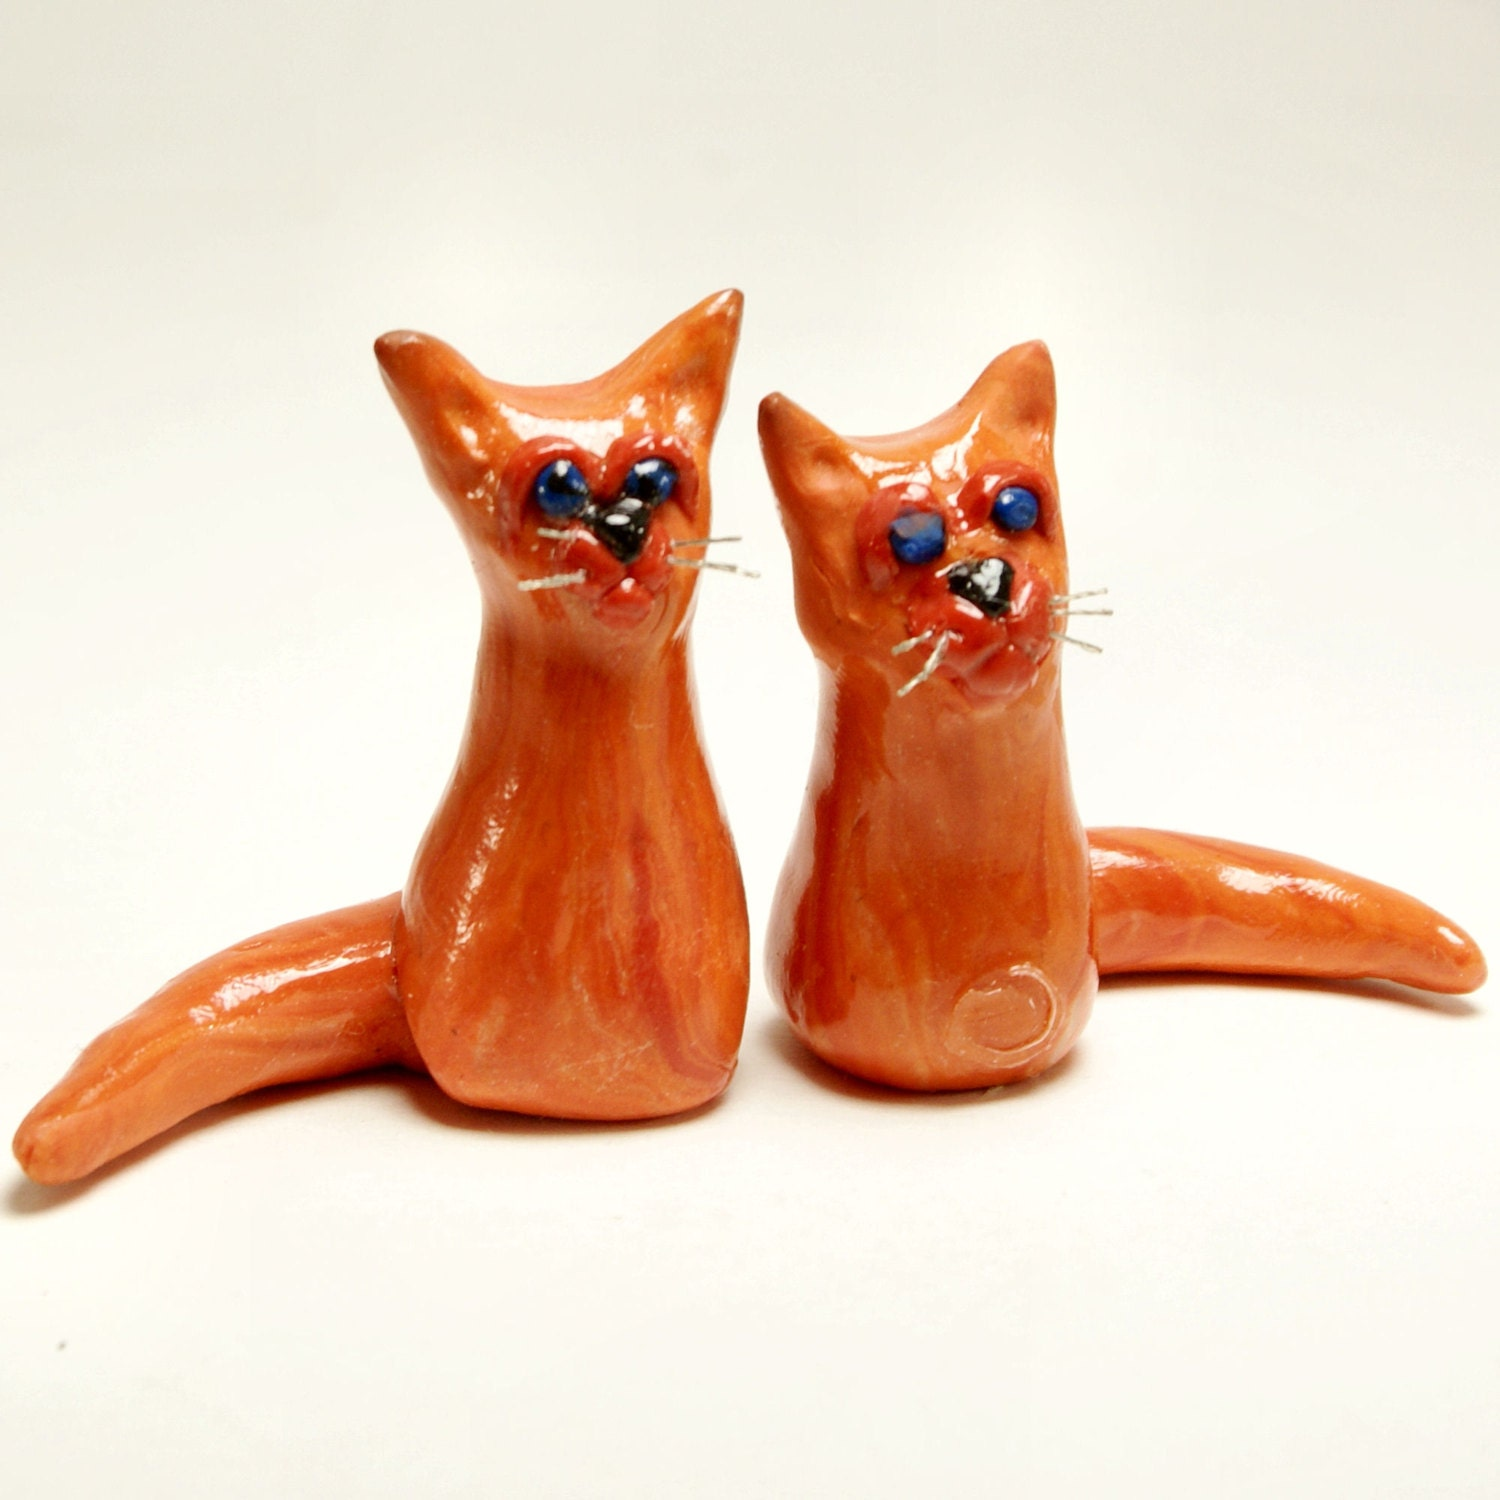 Coral & Jack Sister and Brother Cats Handcrafted Polymer Clay Sculpture - KindredImages